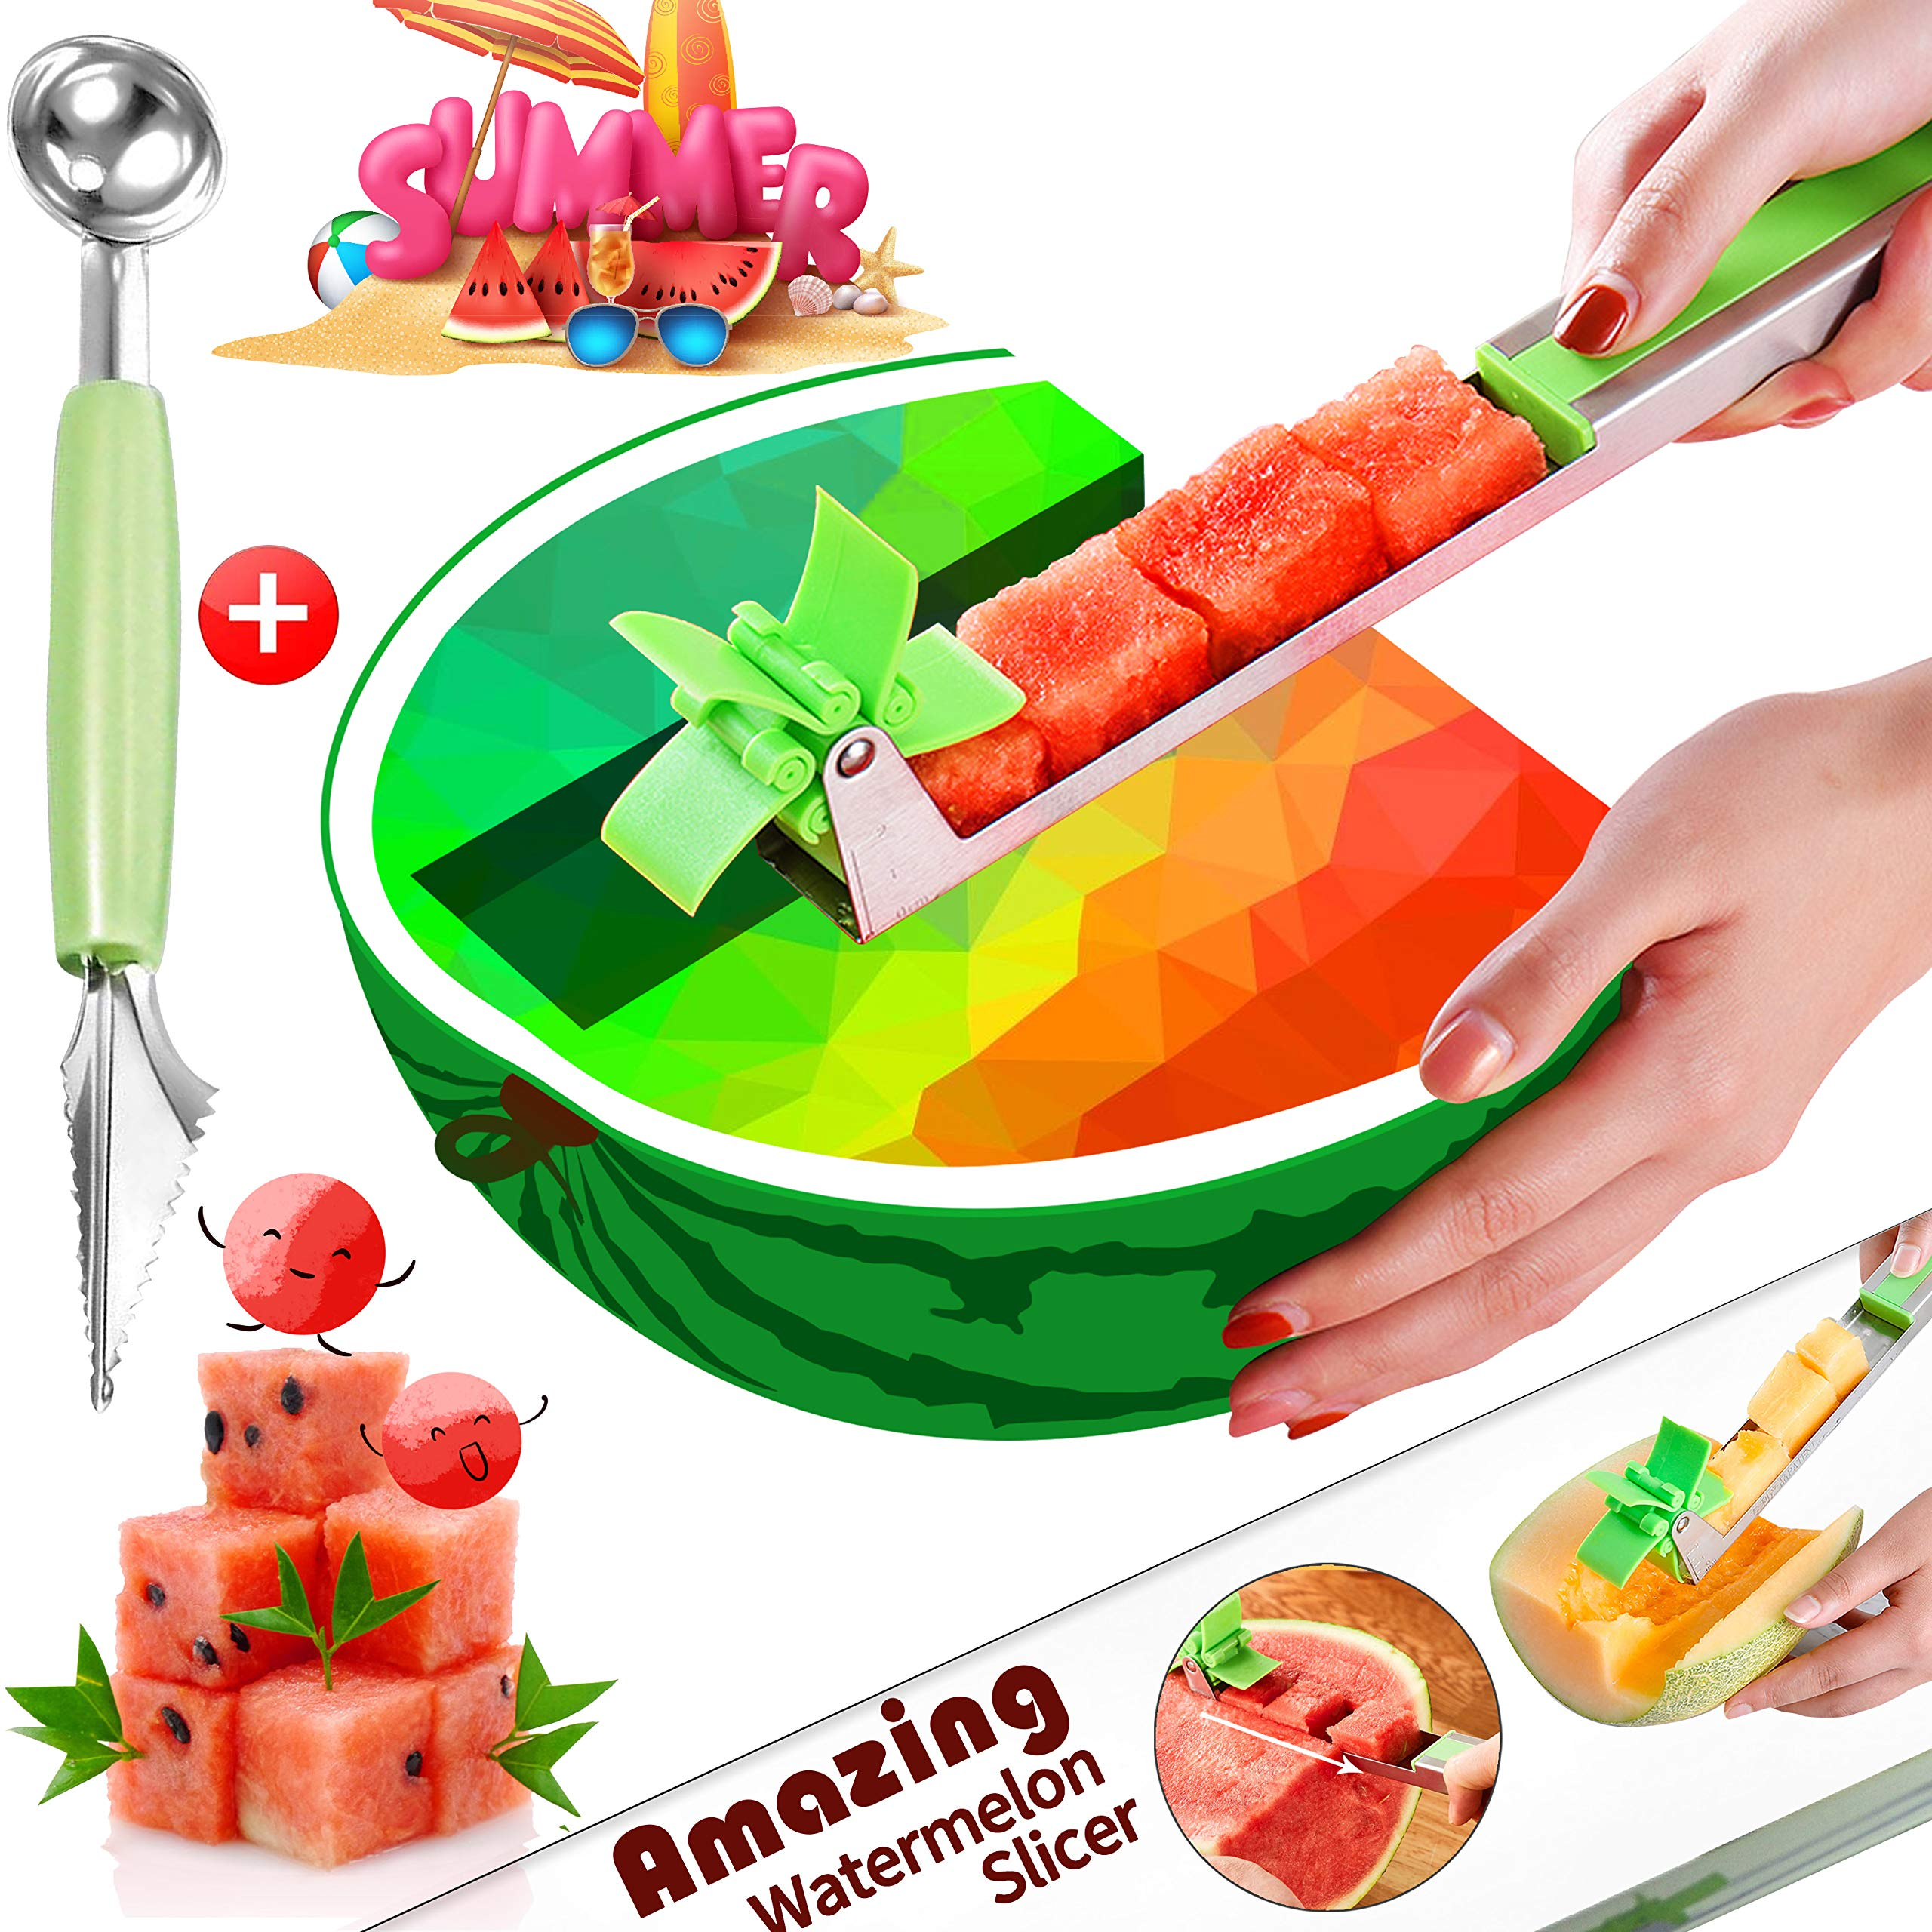 Watermelon Windmill Cutter Slicer Stainless Steel Watermelon Slicer Fruit Tools Kitchen Gadgets FDA Approved & BPA Free by TMABOX